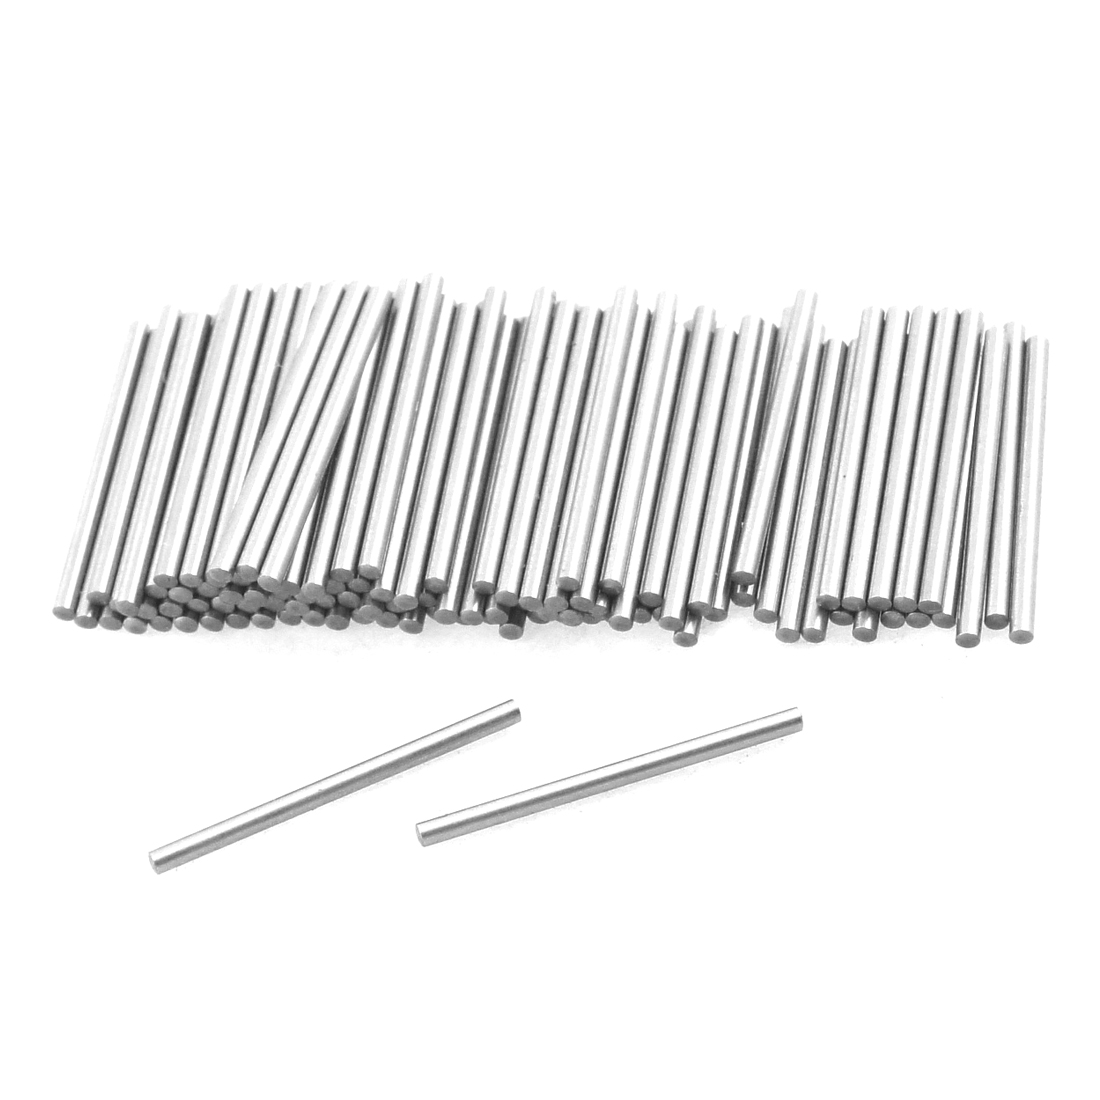 100 Pcs Stainless Steel 1mm x 15.8mm Dowel Pins Fasten Elements